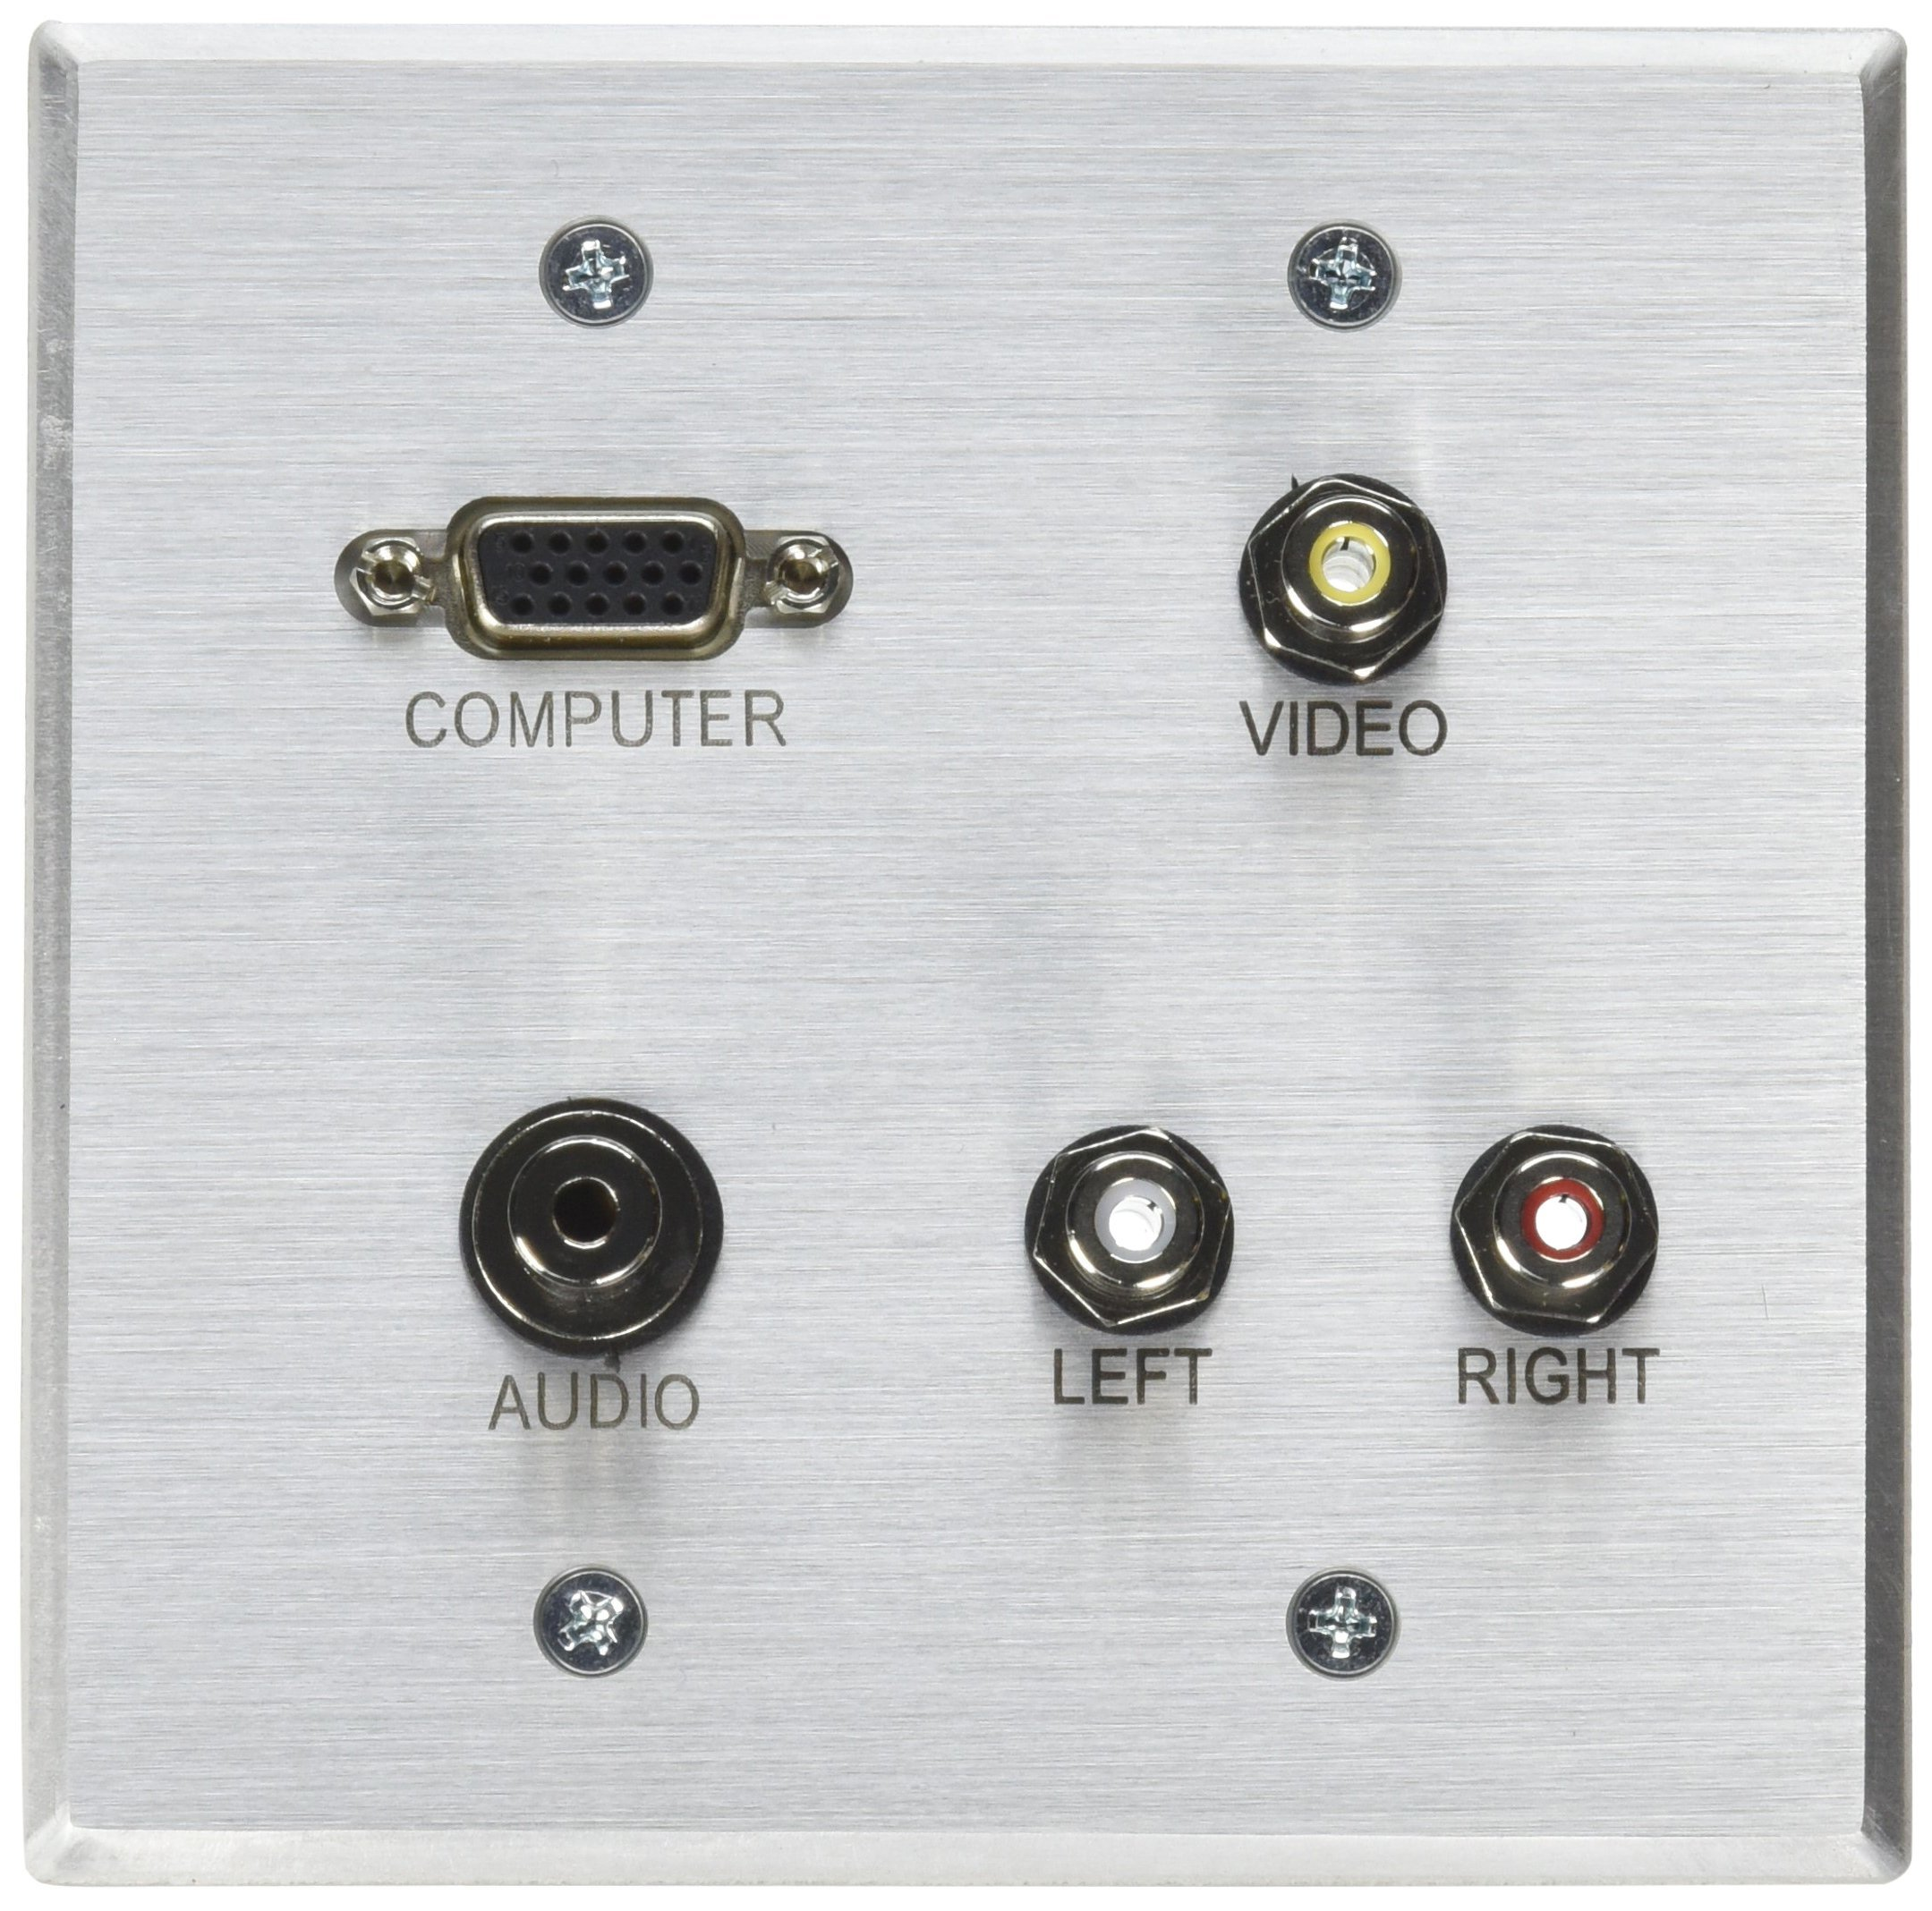 C2G 40506 VGA, 3.5mm Audio, Composite Video and RCA Stereo Audio Pass Through Double Gang Wall Plate, Brushed Aluminum by C2G